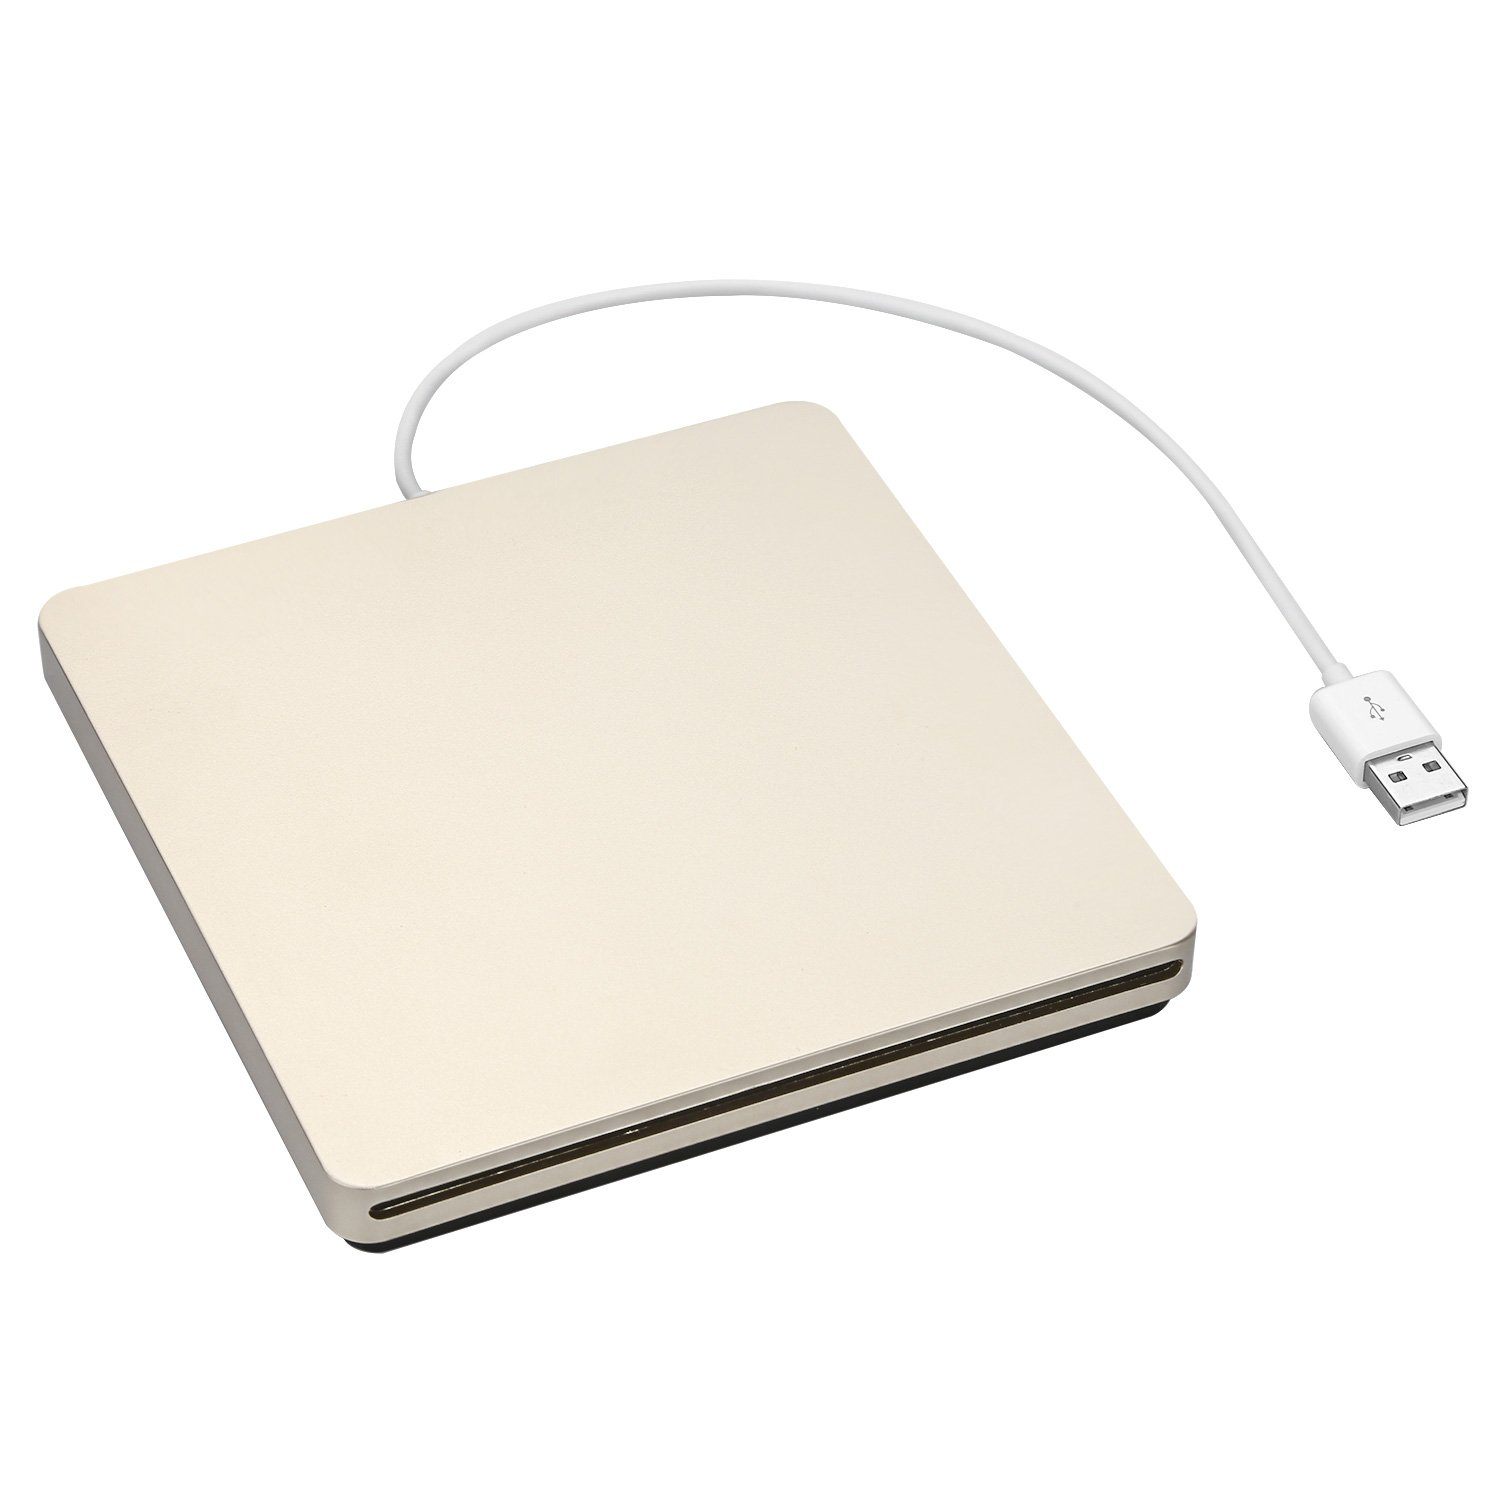 ZSMJ External USB Slot DVD VCD CD Driver DVD-RW CD-RW Burner Superdriver For Apple MacBook Air,Macbook Pro (Golden)